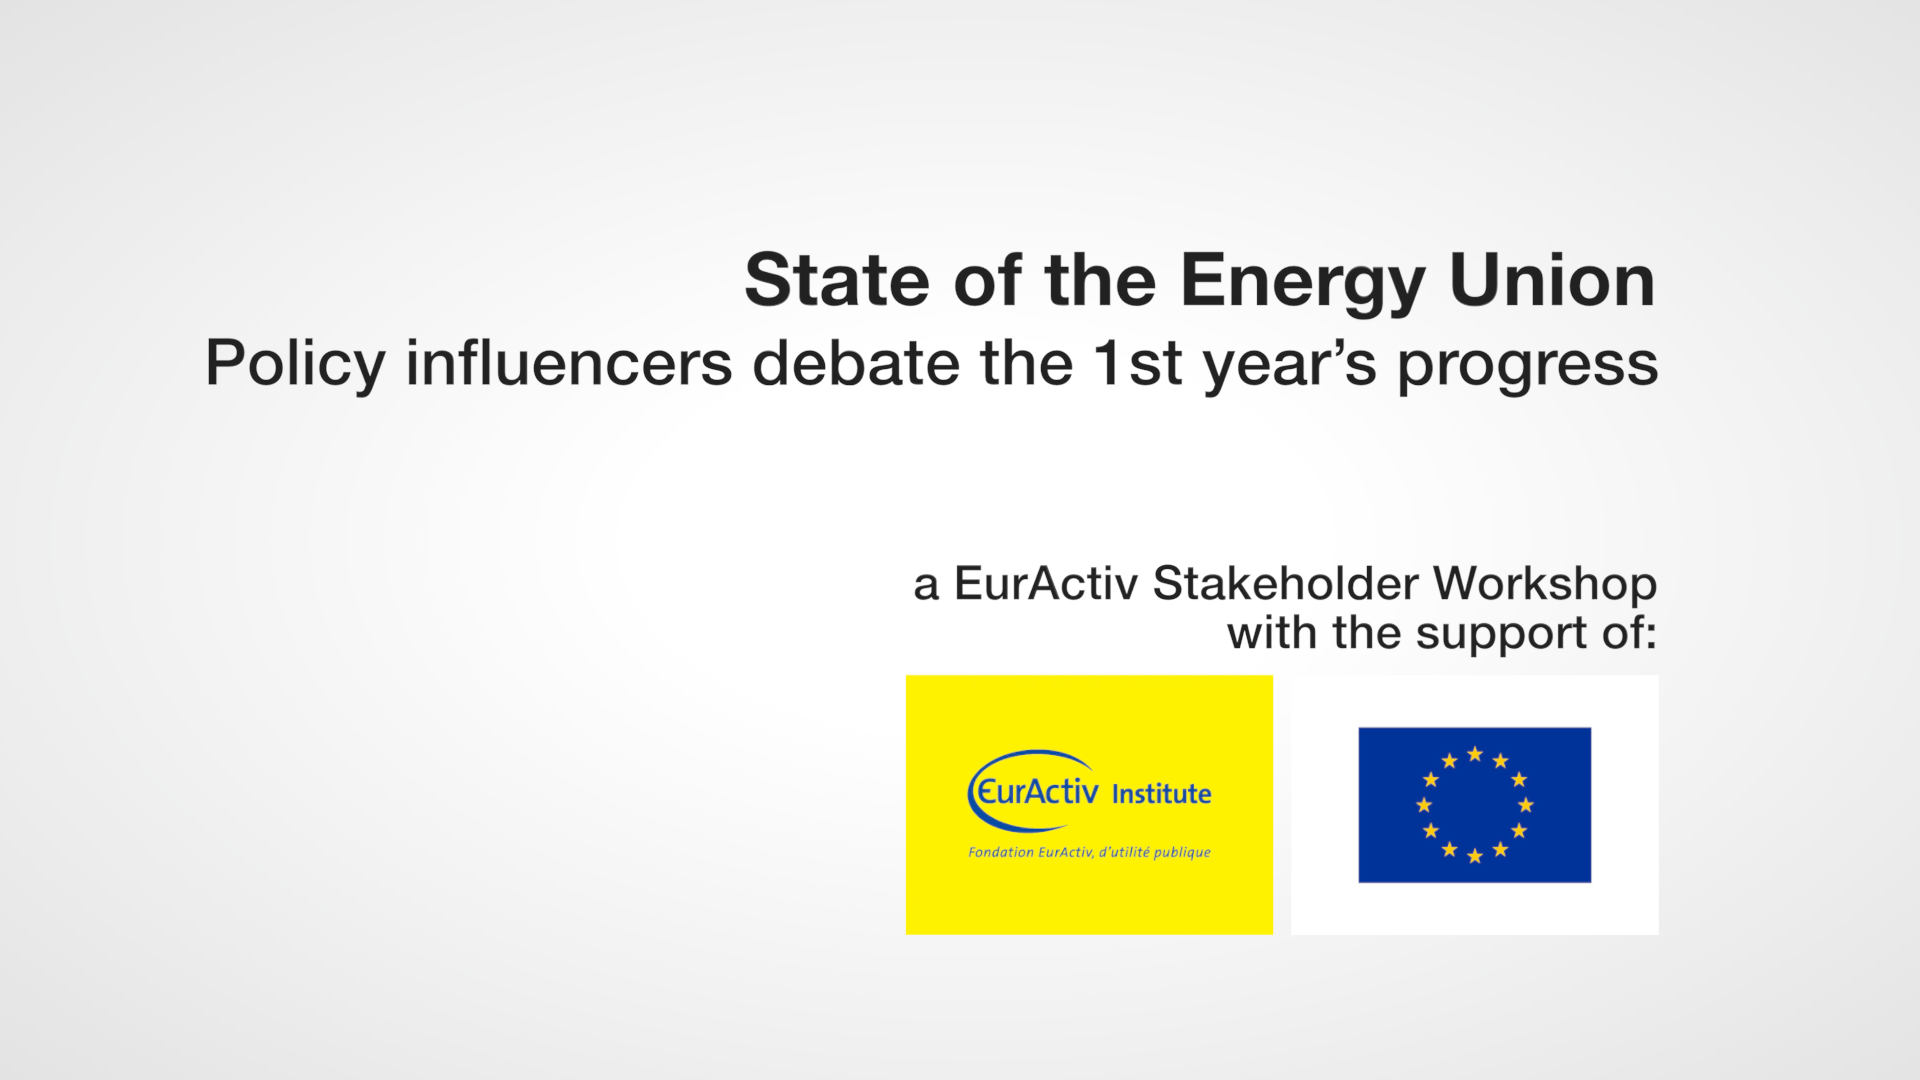 State of the Energy Union, one year on